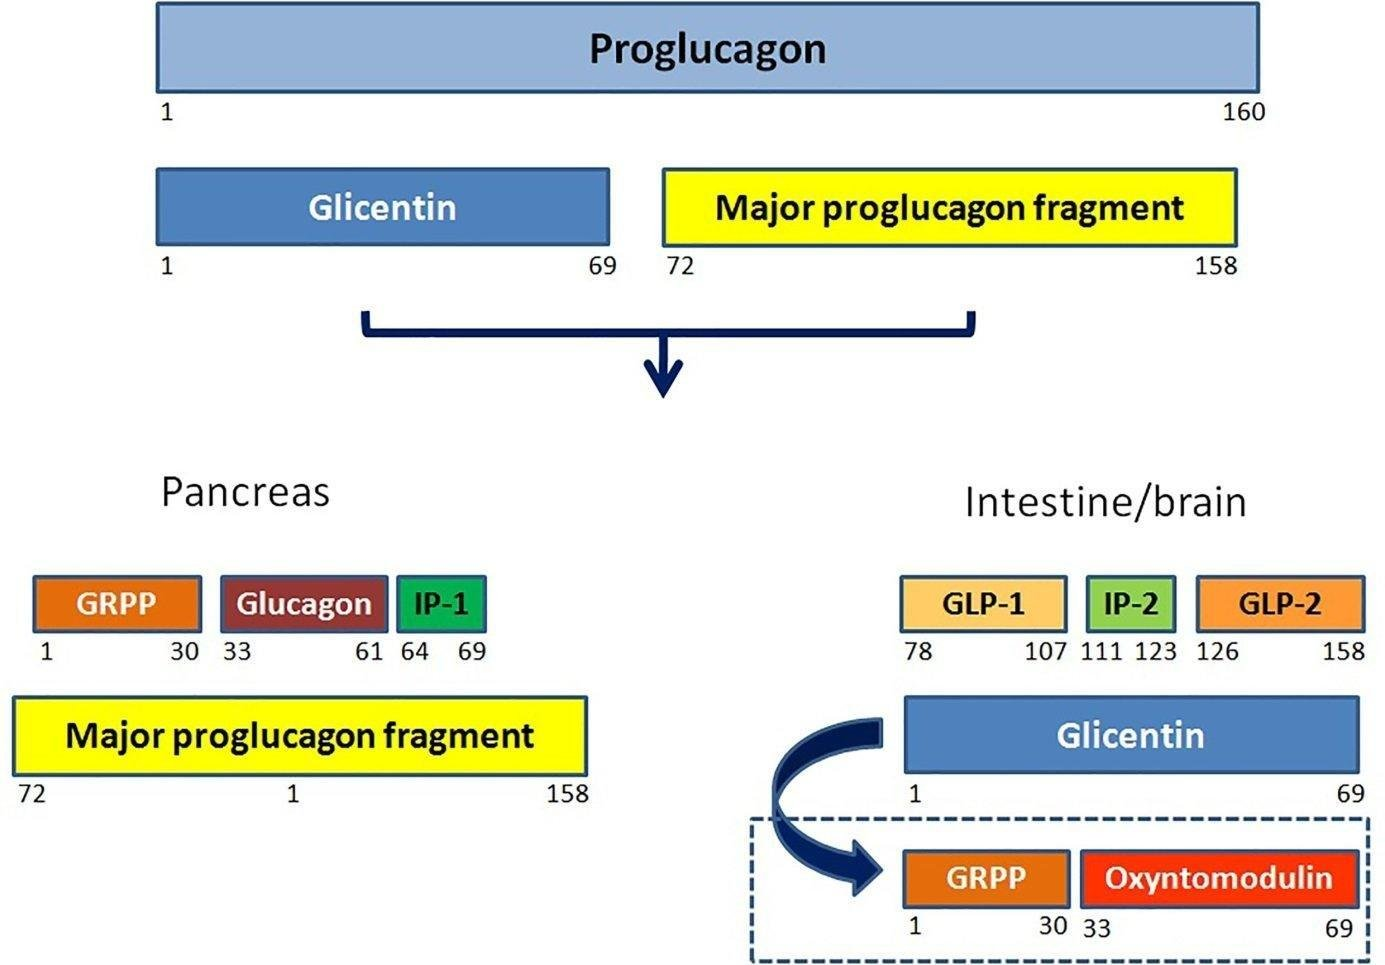 Incretin System In The Pathogenesis Of Type 2 Diabetes And The Role Of Incretin Based Therapies In The Management Of Type 2 Diabetes